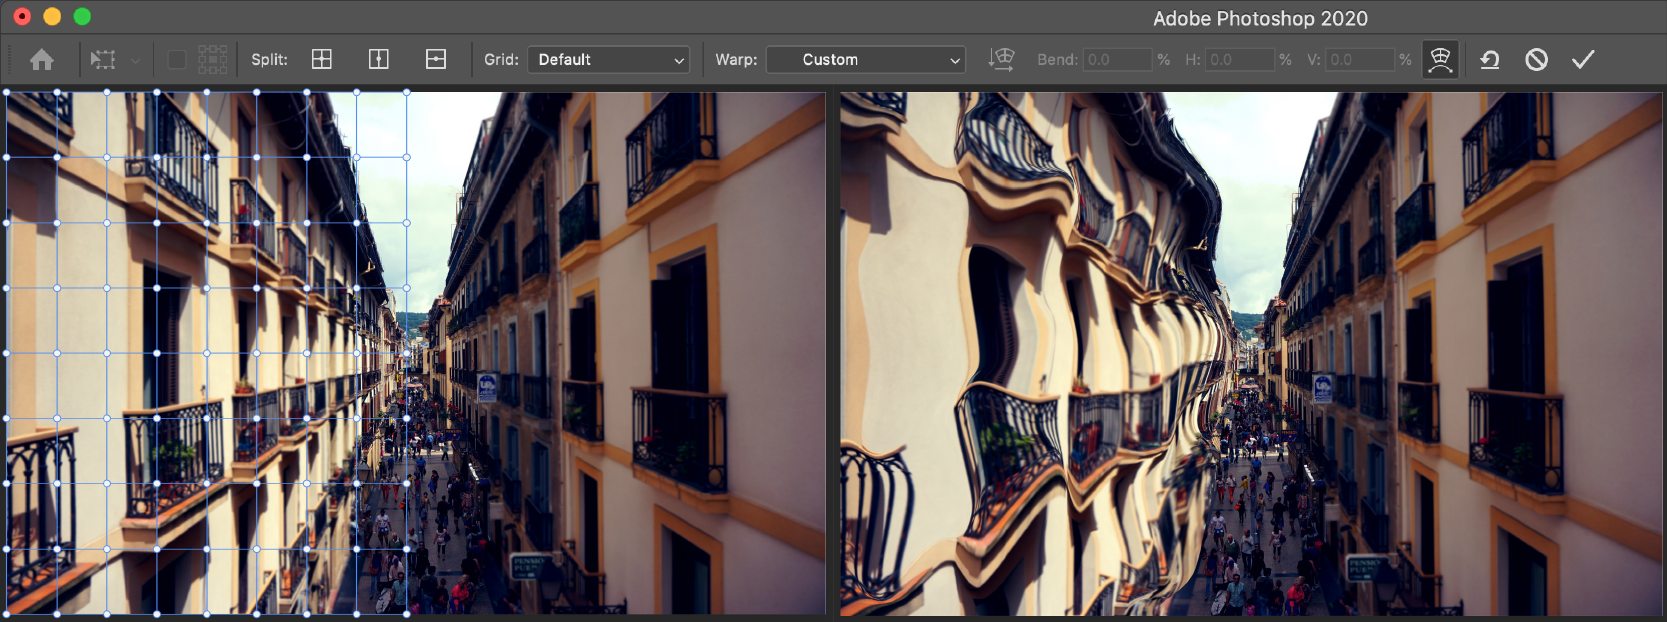 Warp Images Shapes And Paths In Adobe Photoshop